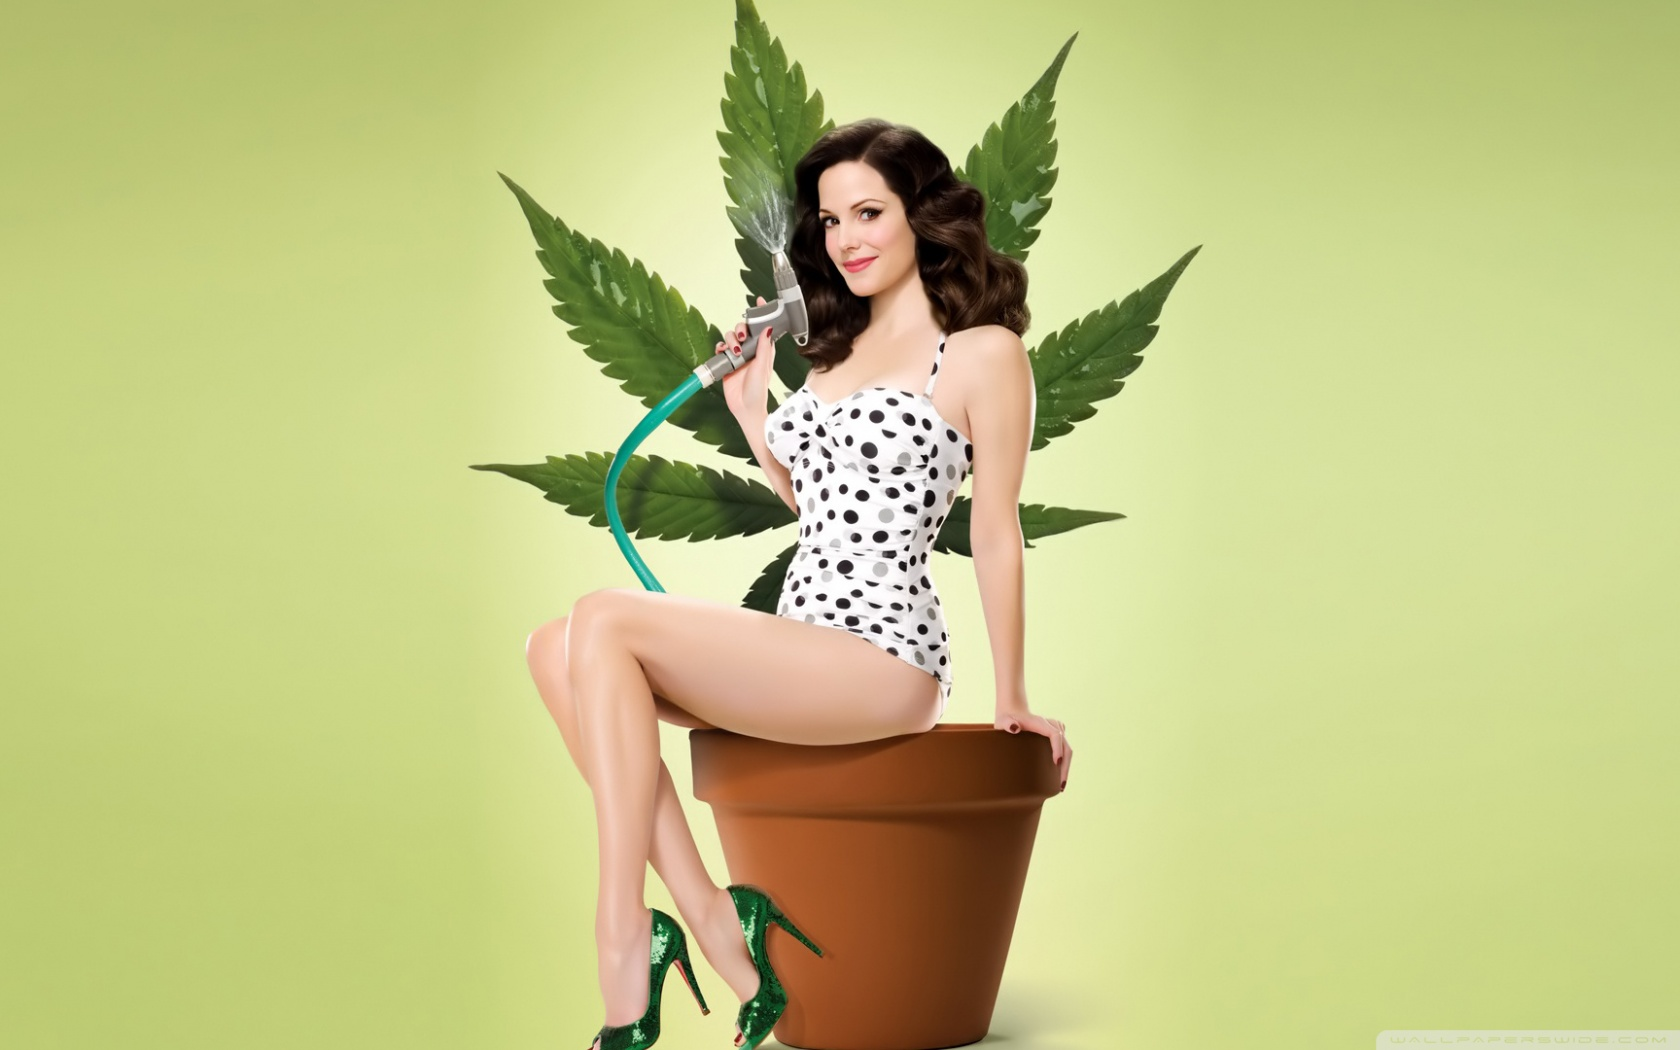 1680x1050 - Mary-Louise Parker Wallpapers 13